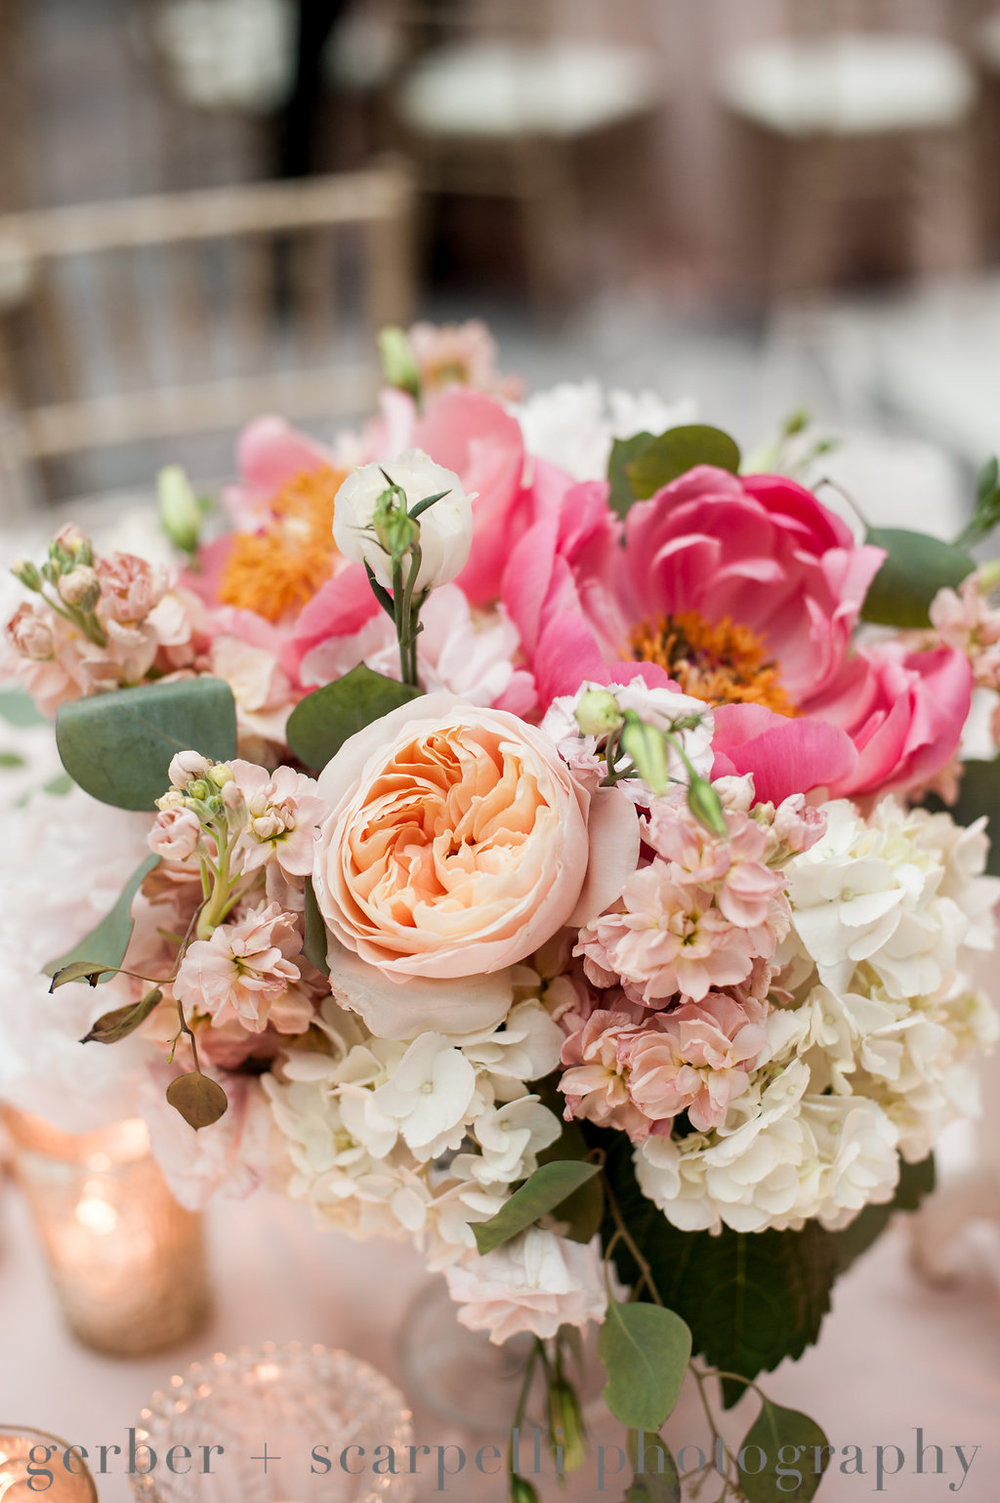 Flowers by Fleur Inc, Photo by Gerber & Scarpelli Photography, Planning by LK Events